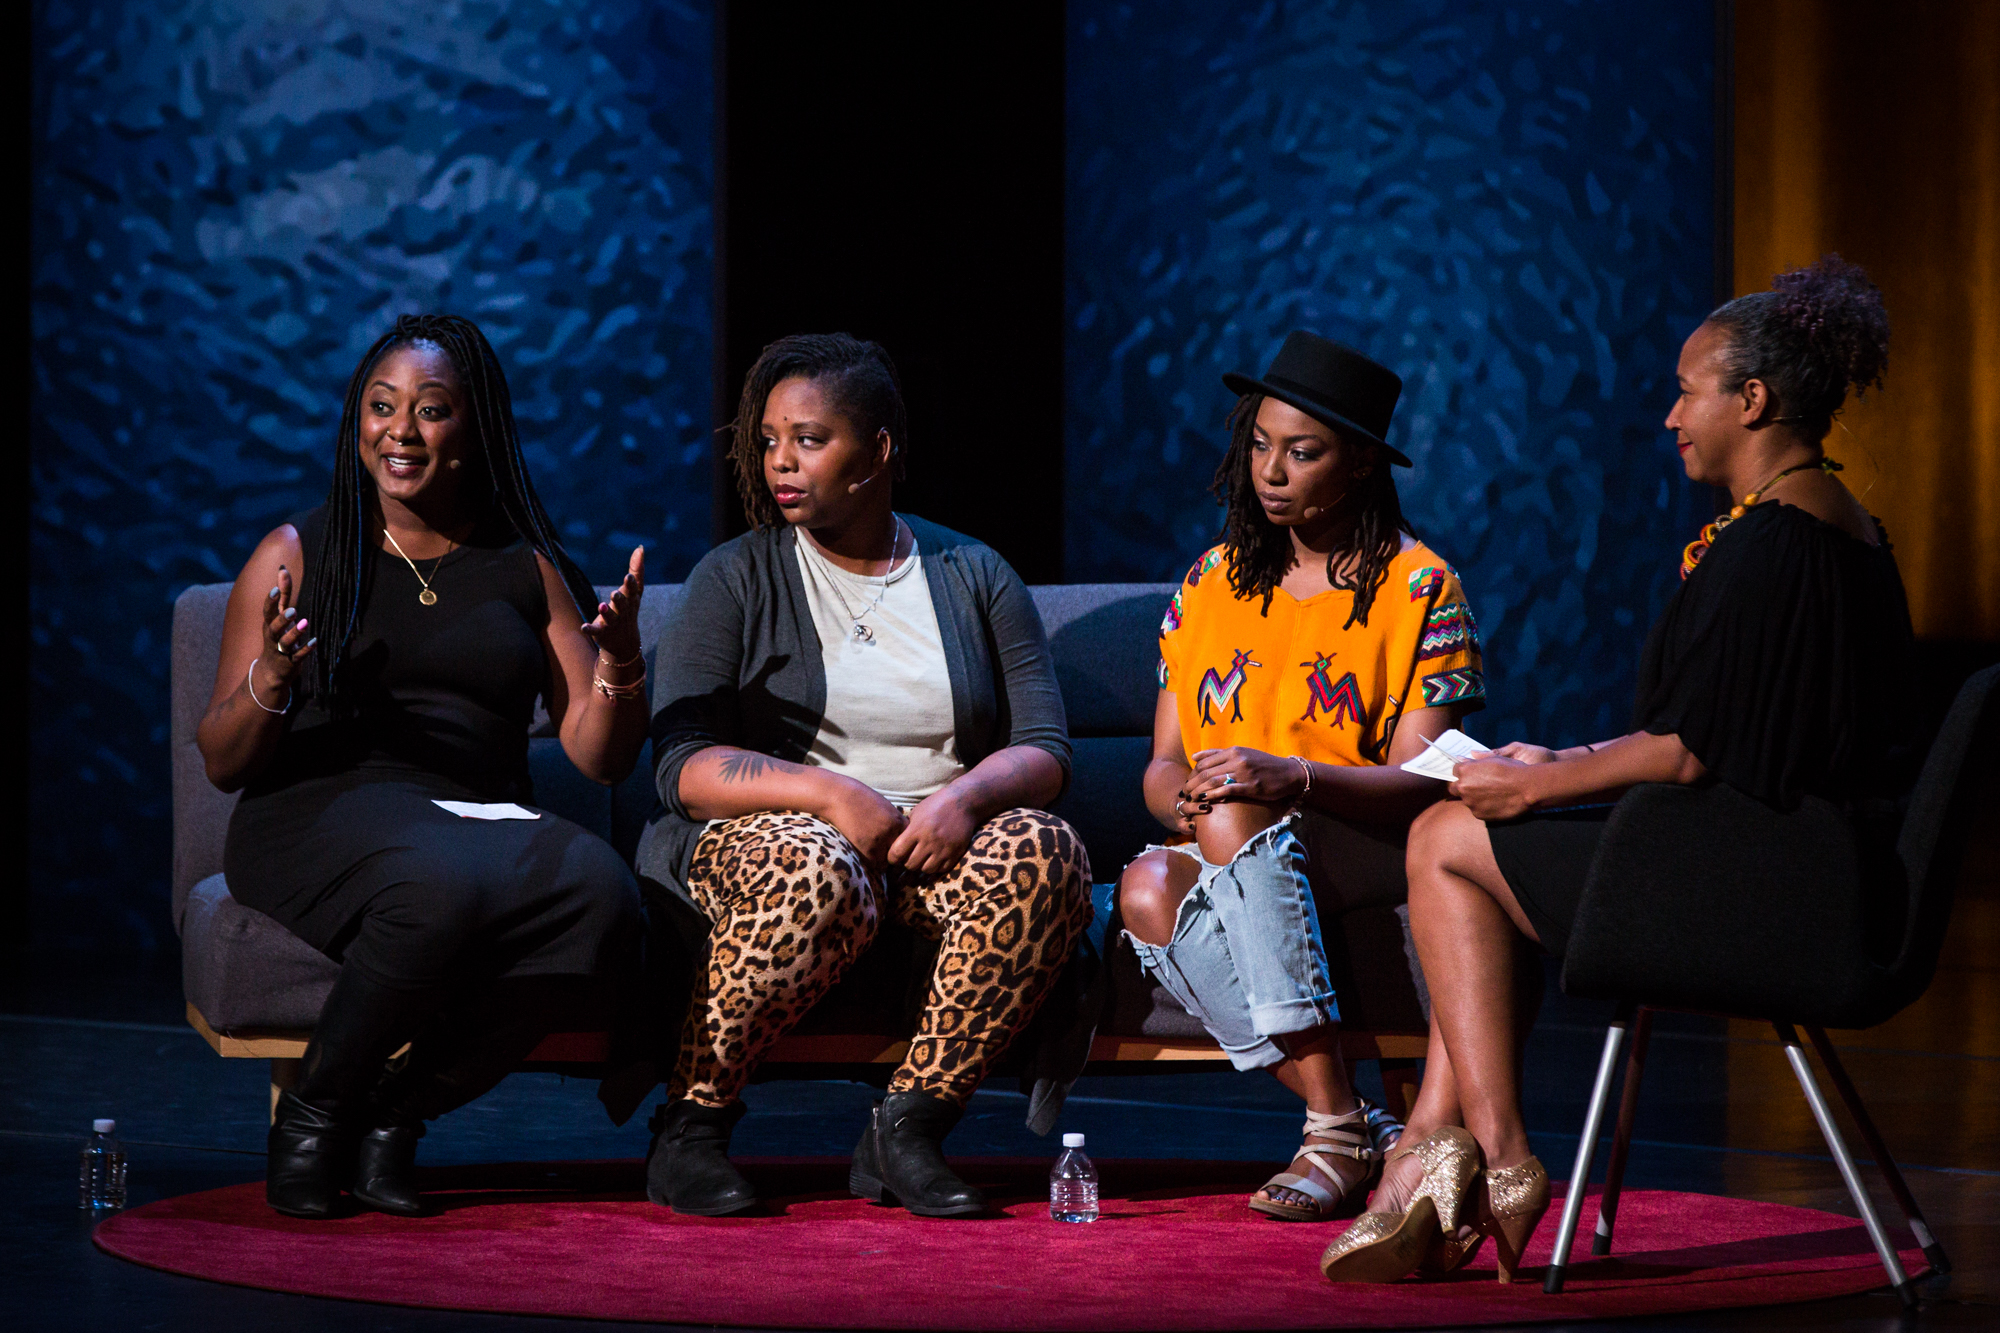 Founders of the Black Lives Matter movement -- from left, Alicia Garza, Patrisse Cullors, and Opal Tometi, interviewed onstage by TEDWomen cohost Mia Birdsong at TEDWomen 2016 in San Francisco. Photo: Marla Aufmuth / TED